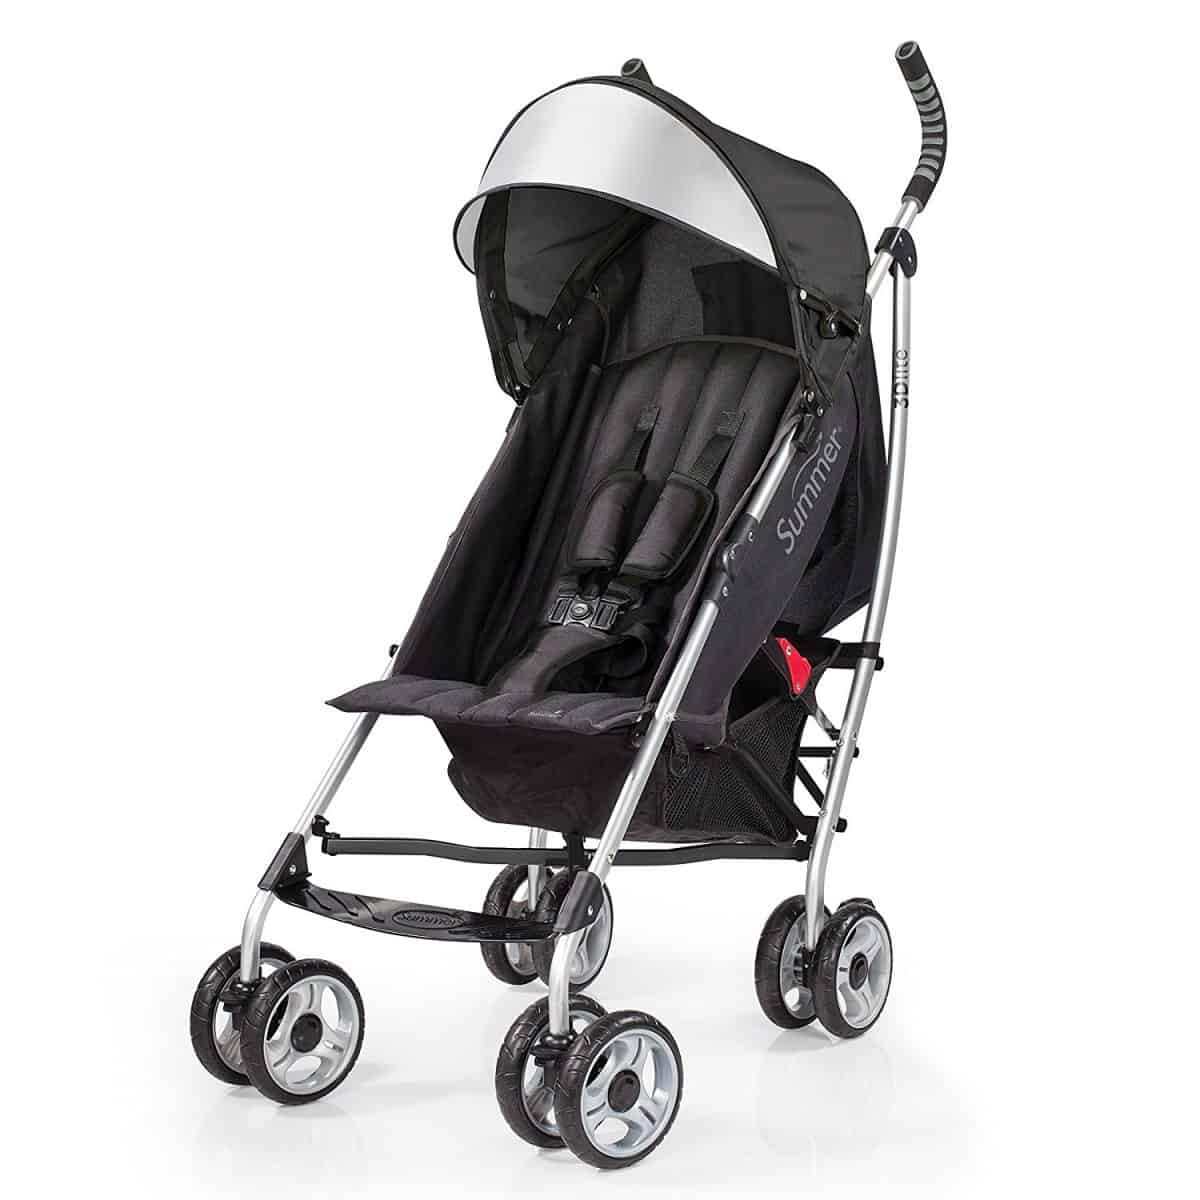 Best Newborn Prams Australia 2018 The 10 Best Lightweight Strollers To Buy 2019 Littleonemag